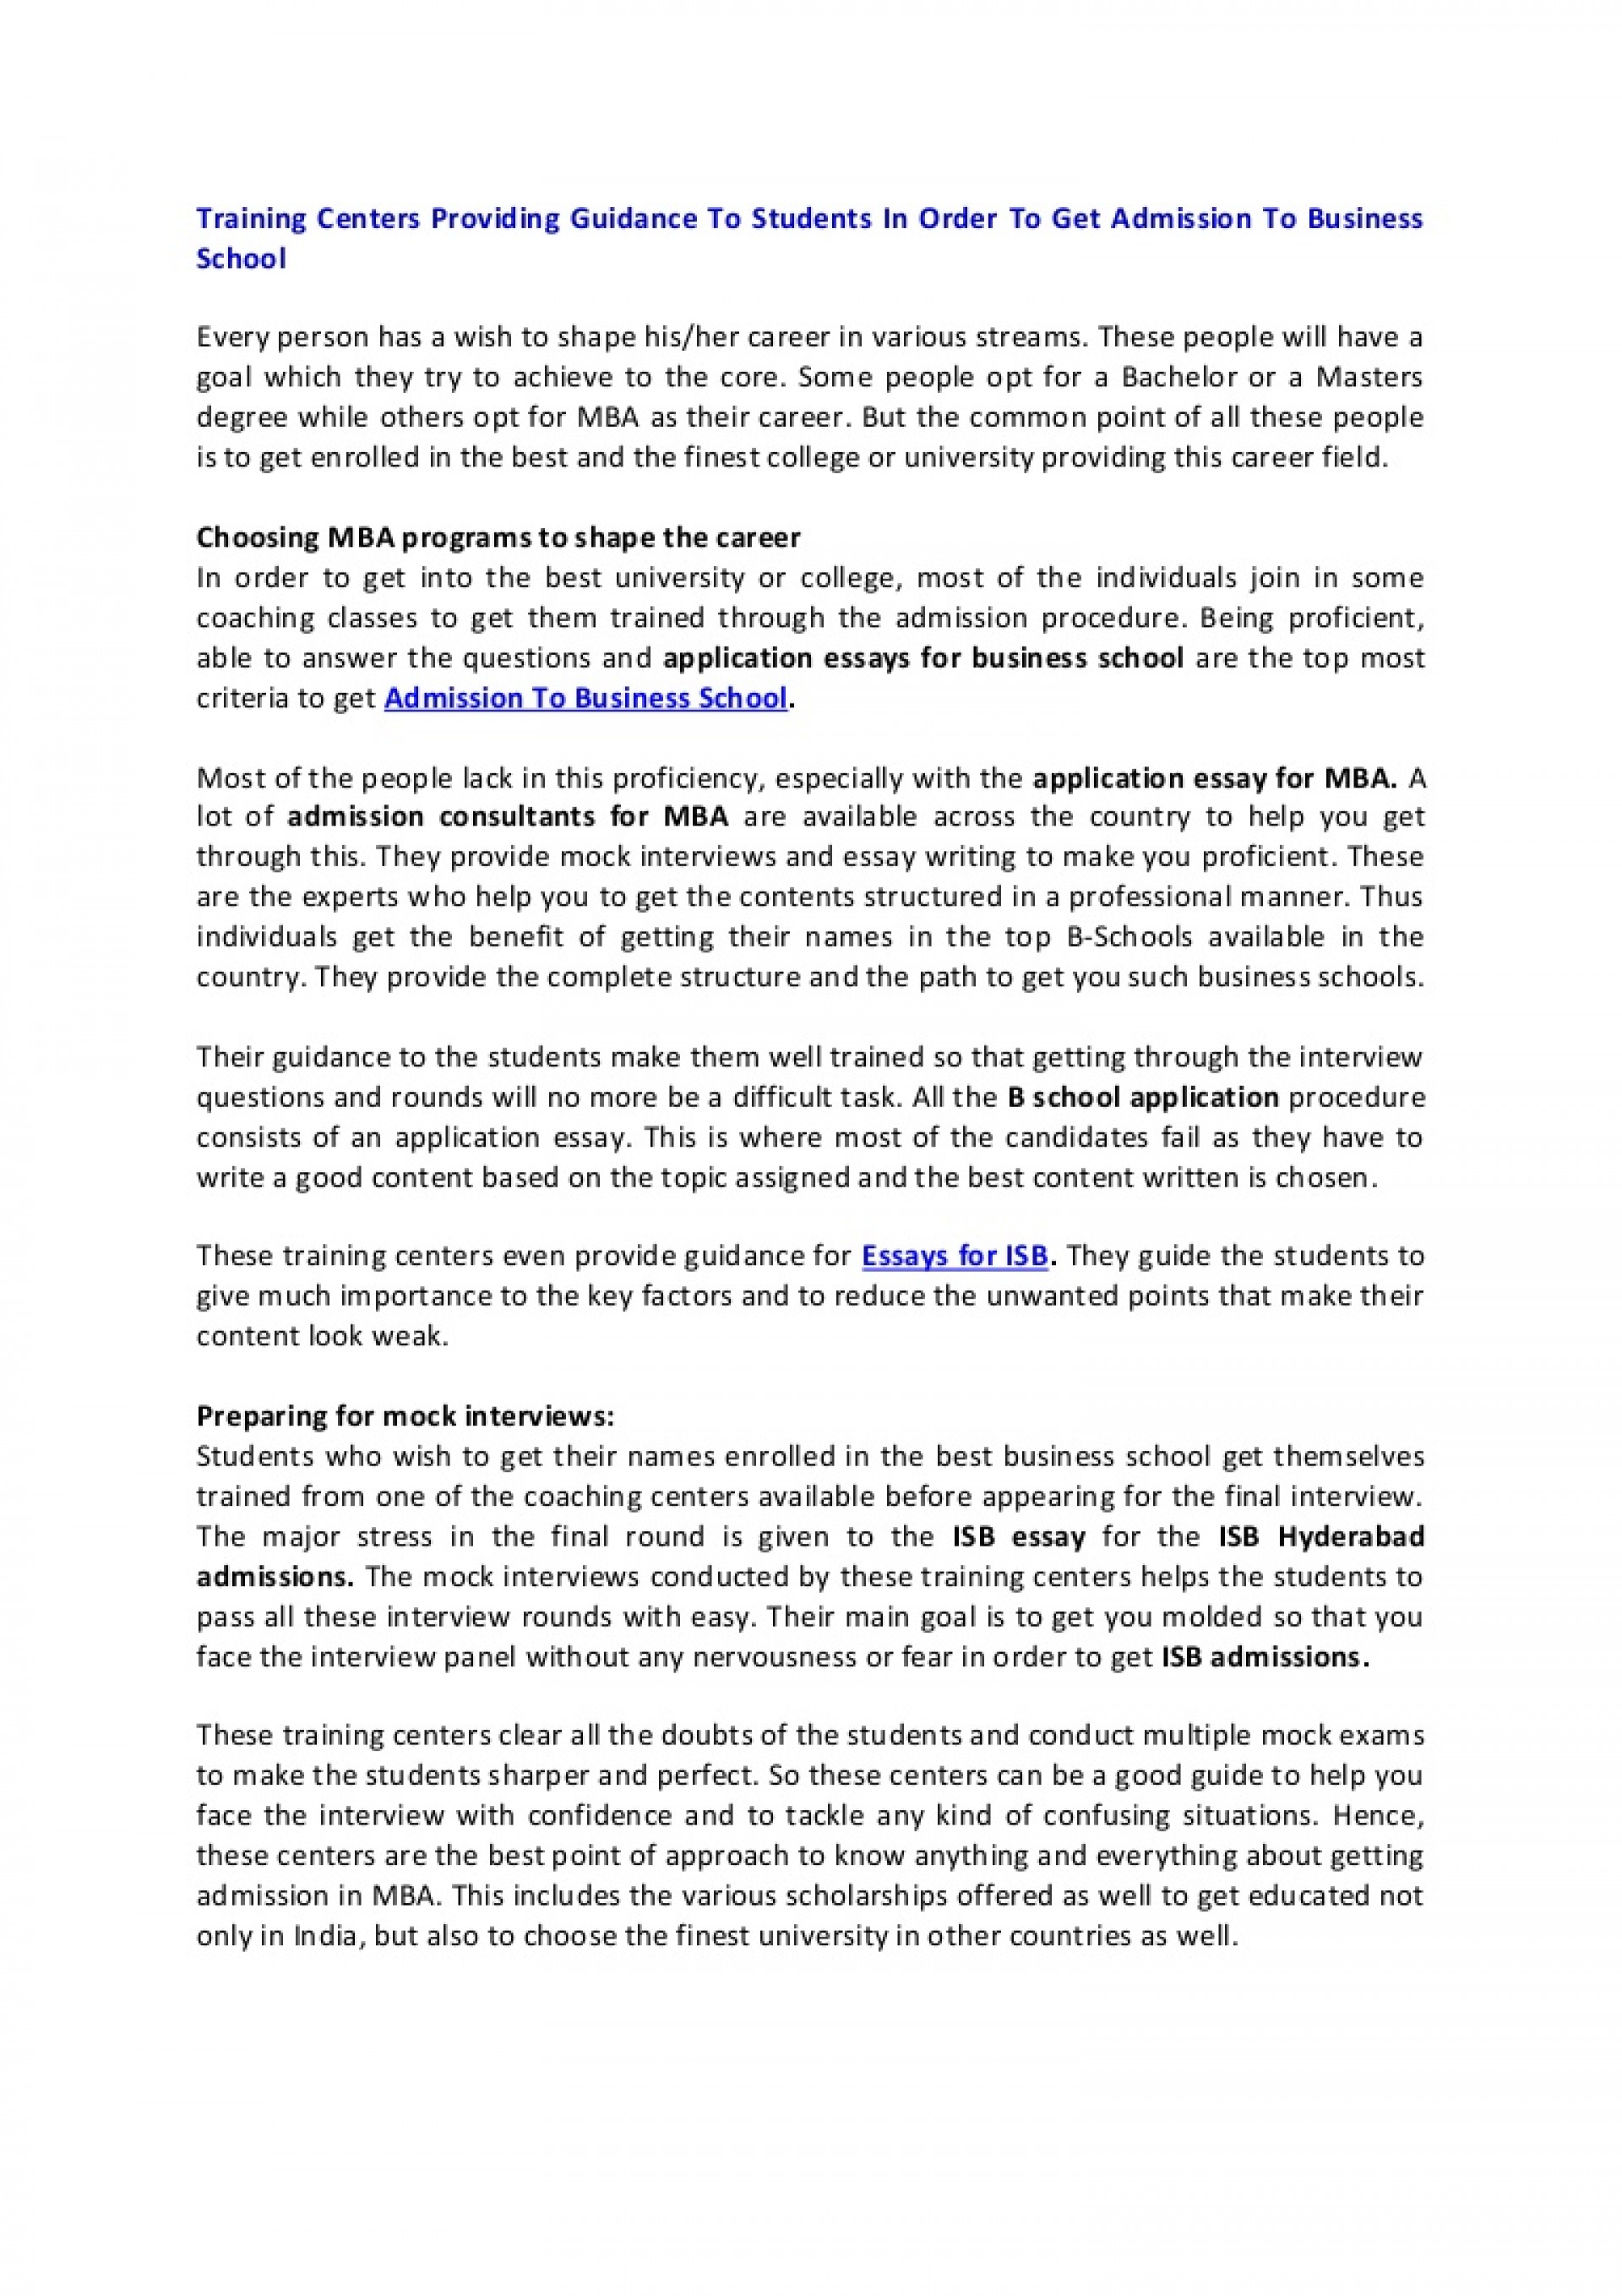 009 Essay Example Columbia Essays Application For Business School Ivyctor Article1 Phpapp01 Thumbn Stanford Harvard Sample Format Best Examples Shocking Mba That Worked Undergraduate 1920